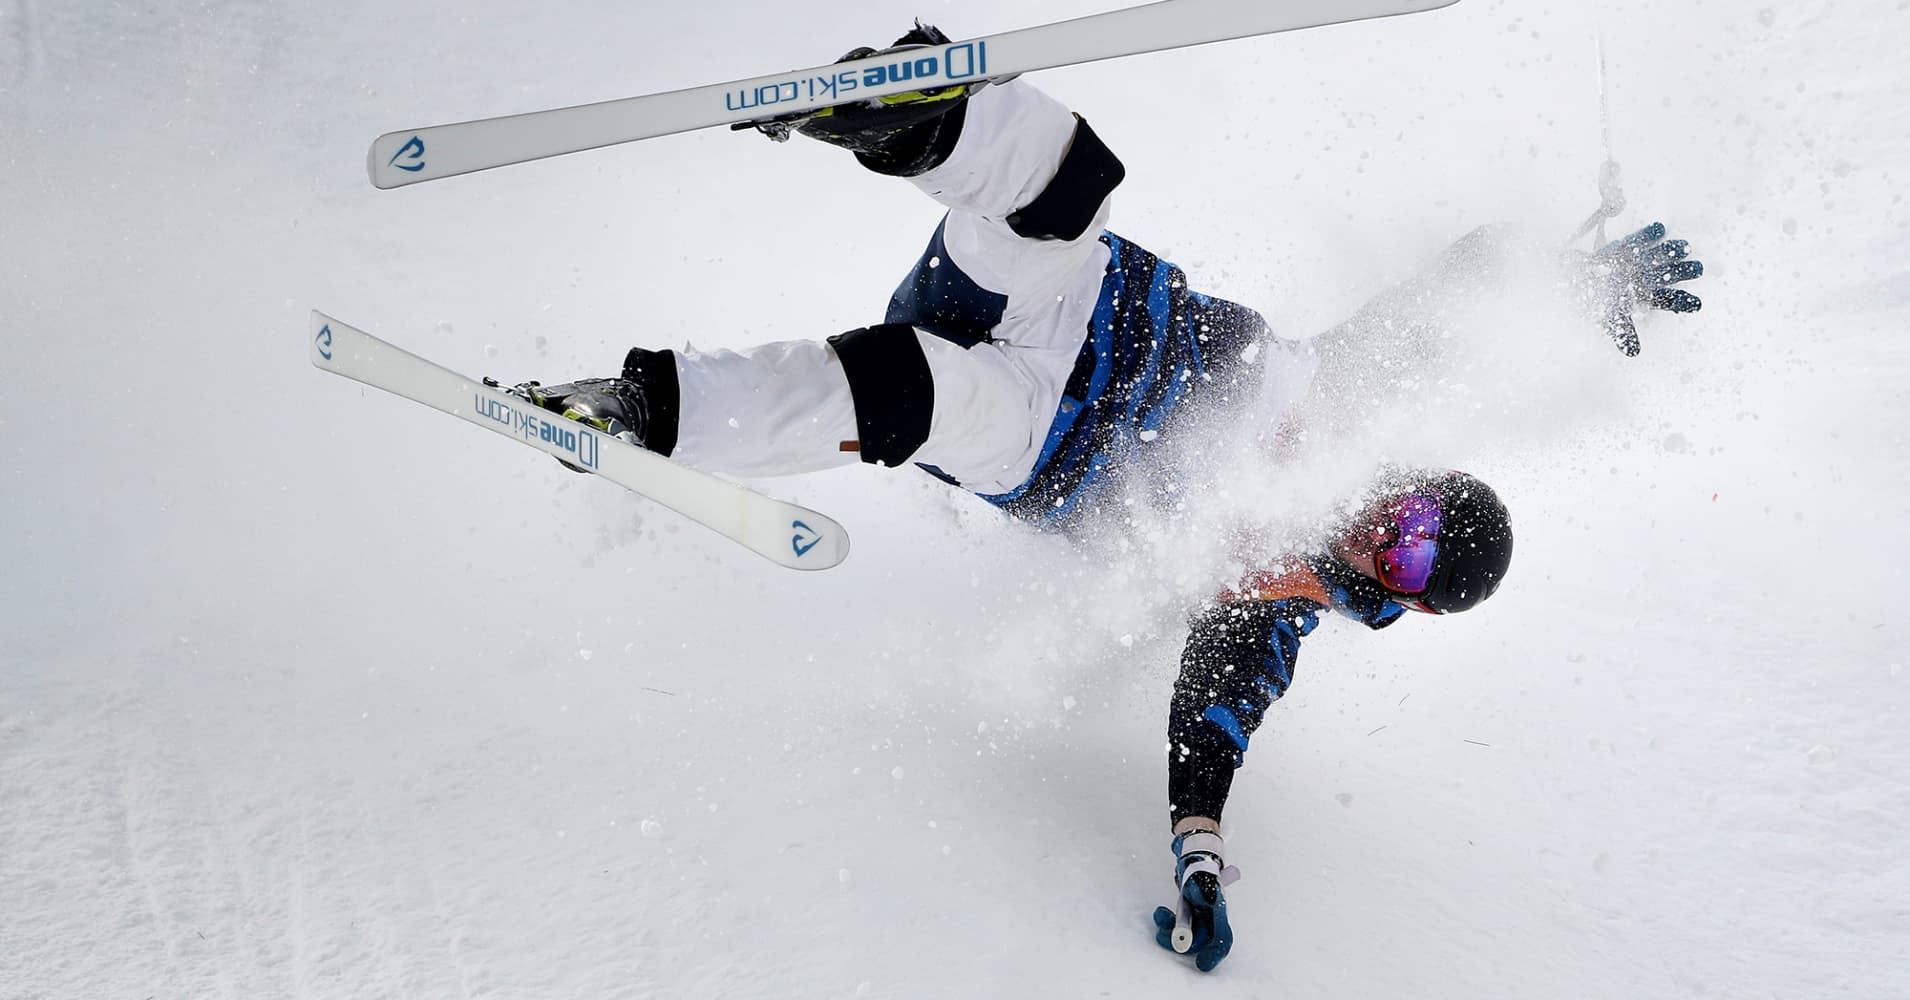 Jussi Penttala of Finland crash lands during the Freestyle Skiing Men's Moguls Qualification at Phoenix Snow Park on February 9, 2018 in PyeongChang, South Korea.